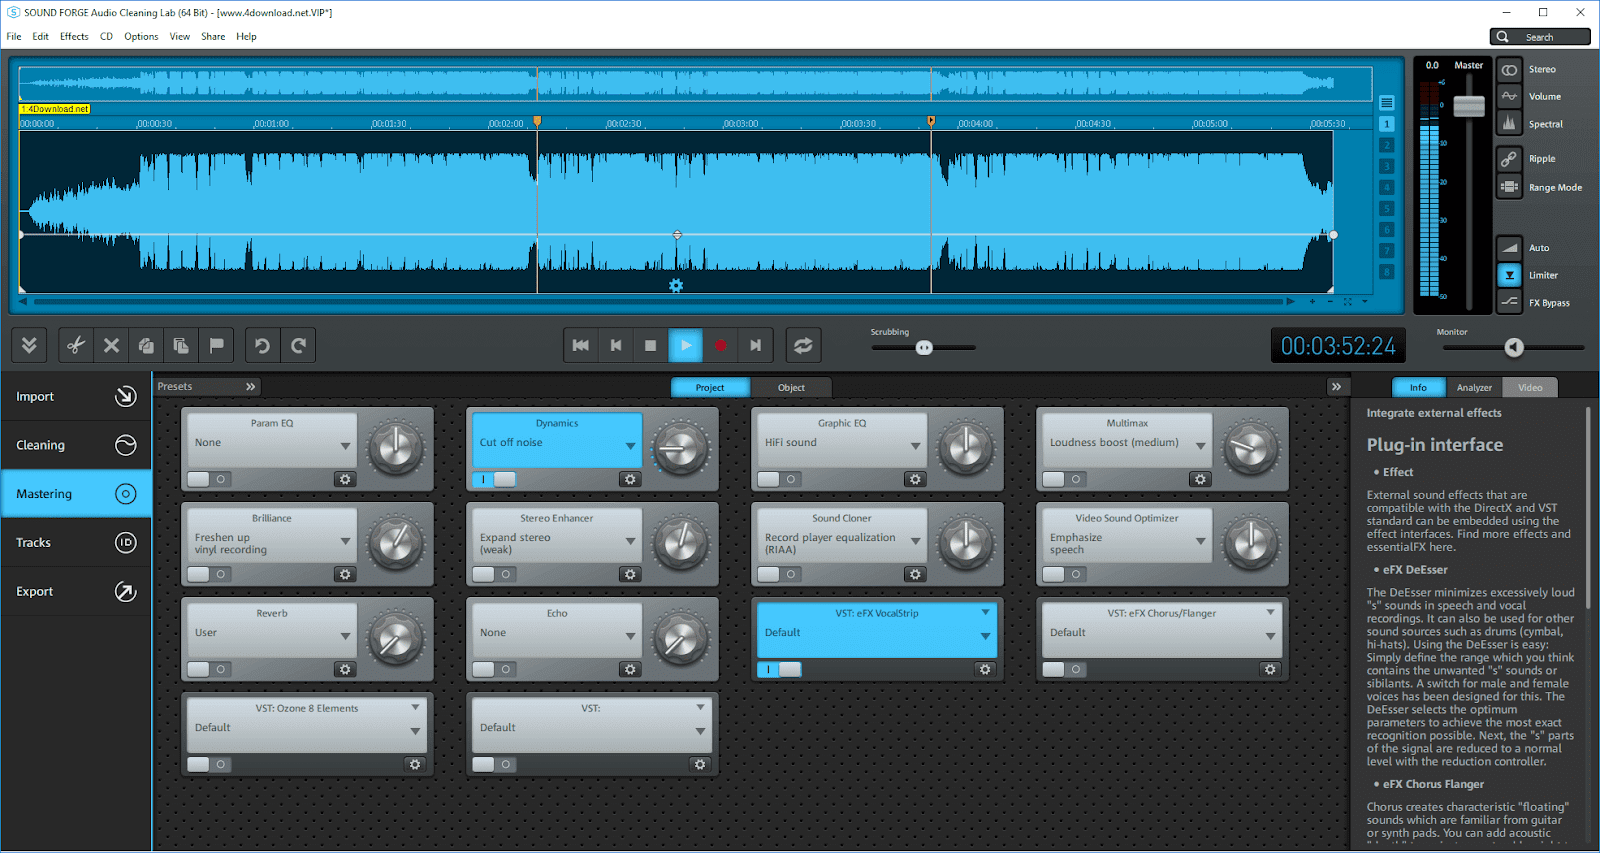 SOUND FORGE Audio Cleaning Lab v23.0.1.21 Full version